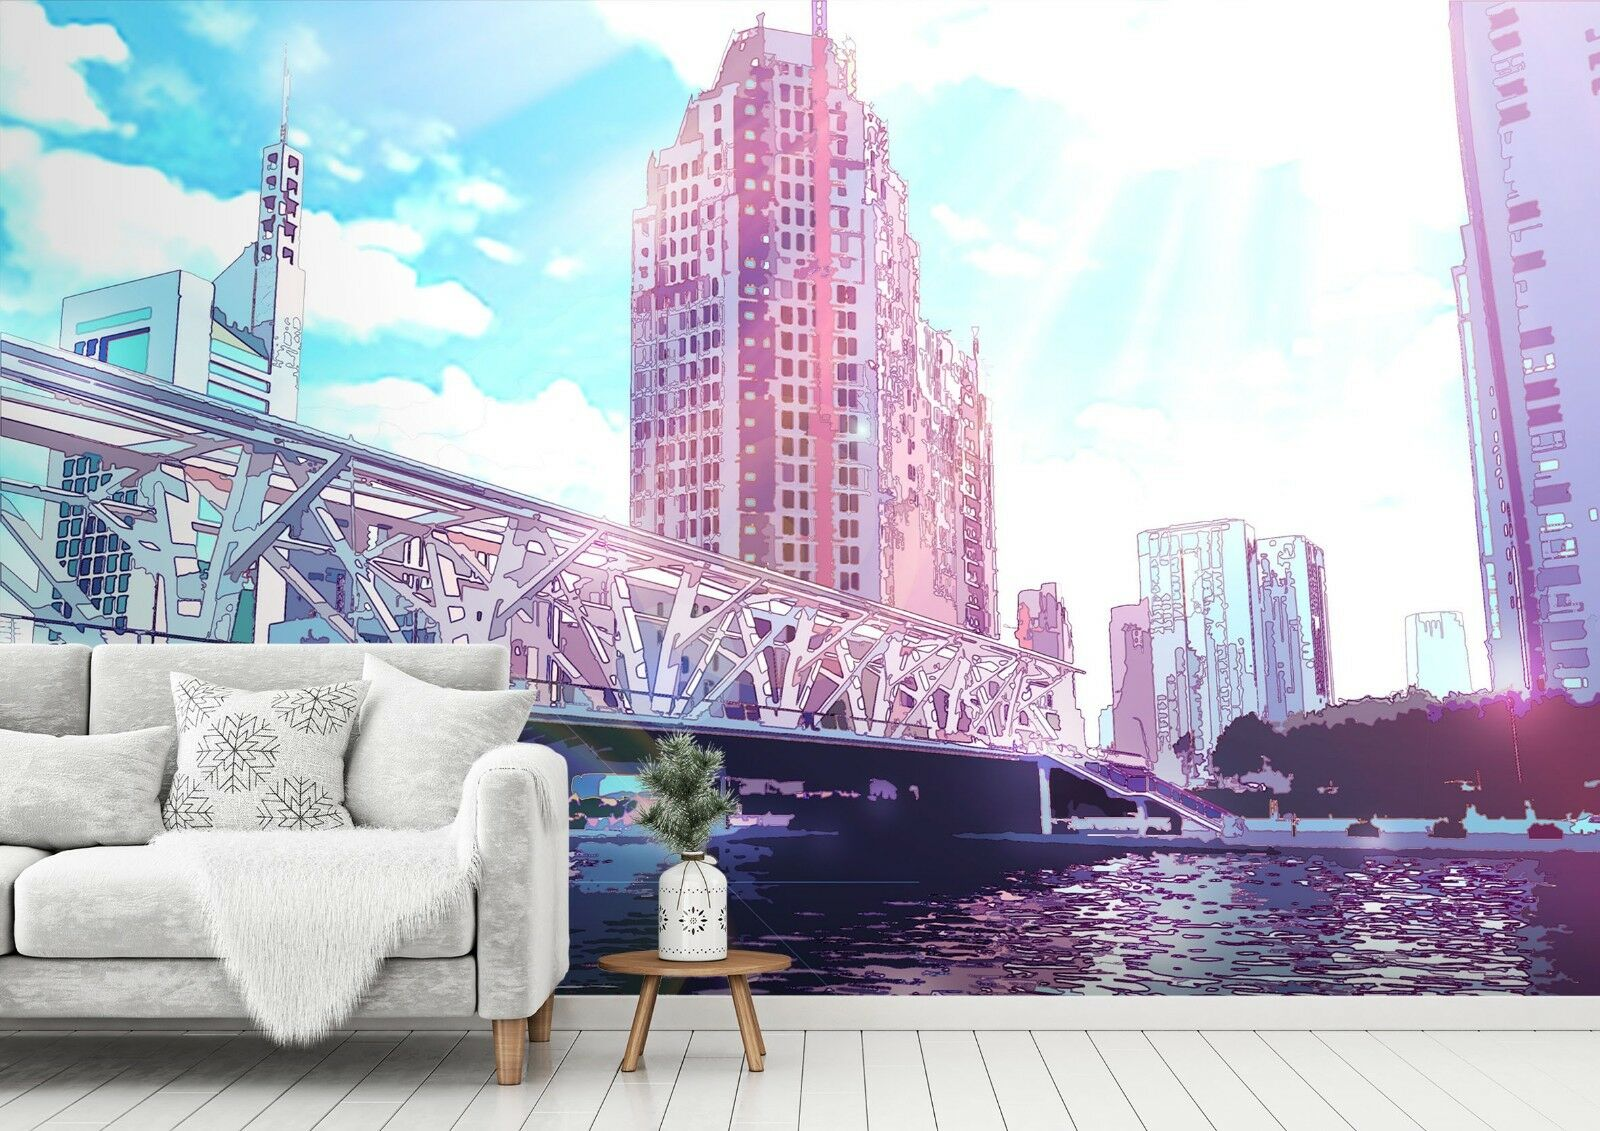 3D Anime Sky City Bridge 45  Wallpaper Murals Wall Print Wallpaper Mural AJ WALL